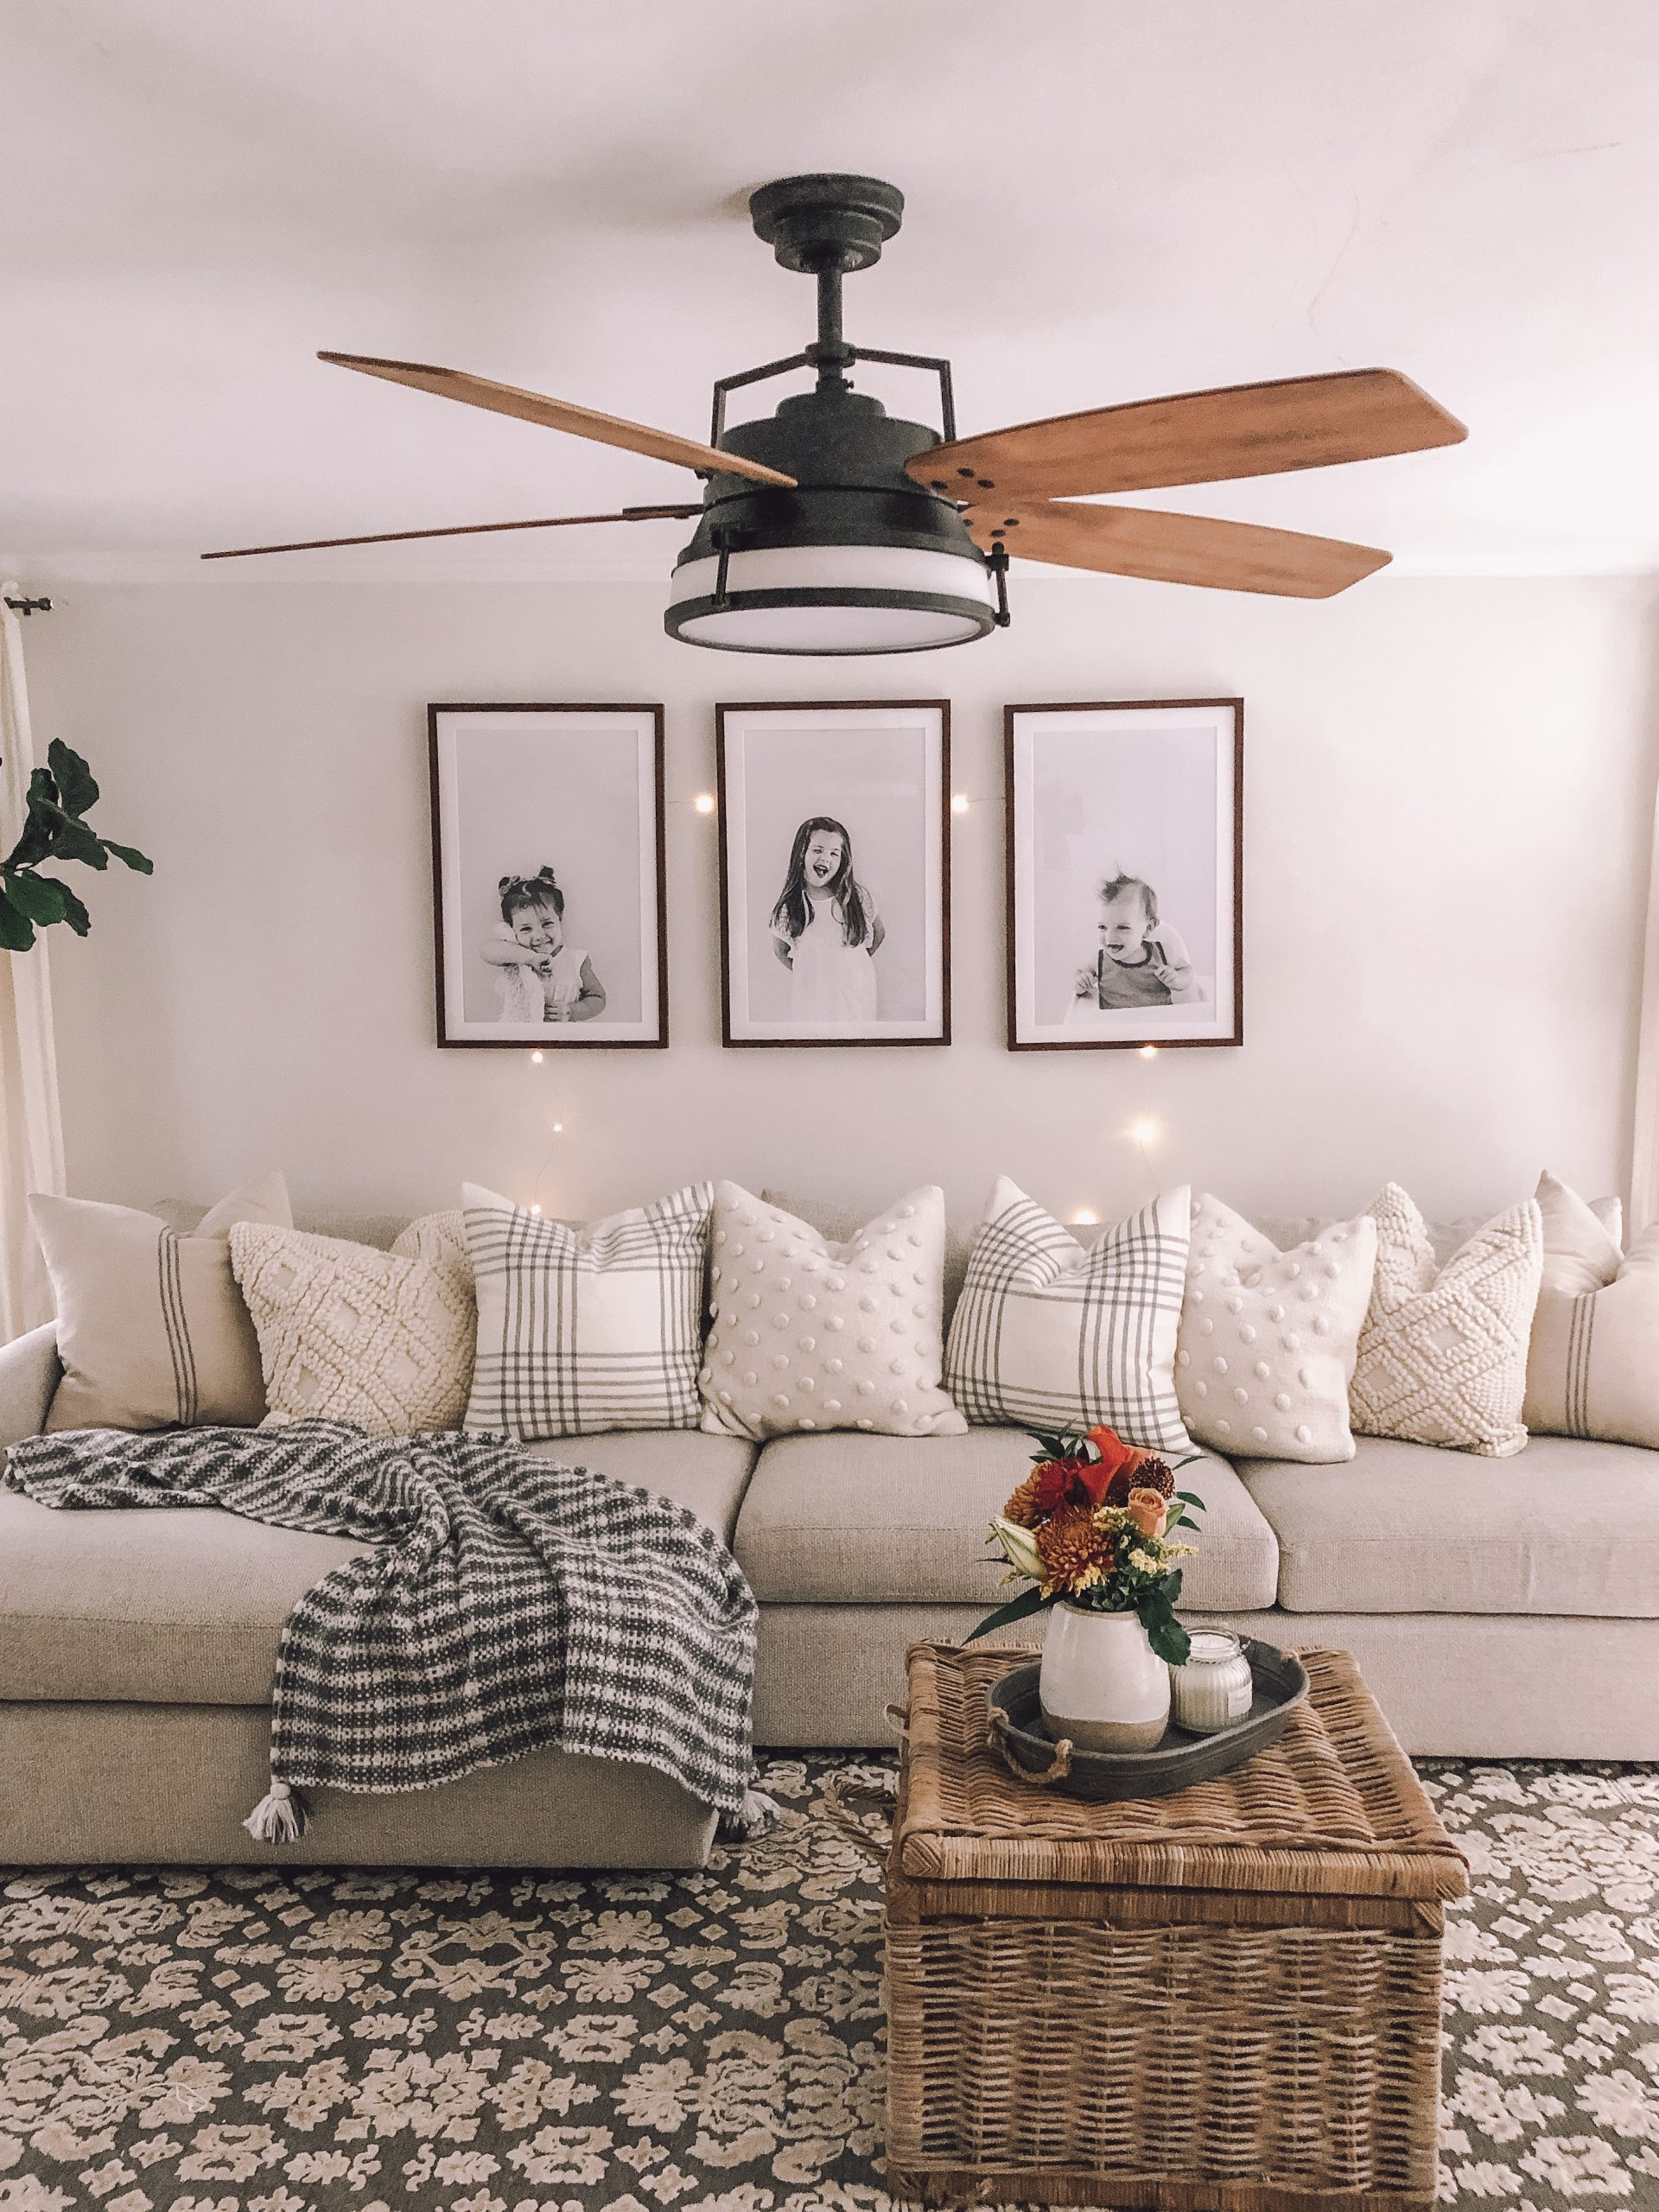 Three Large Photos Above Couch